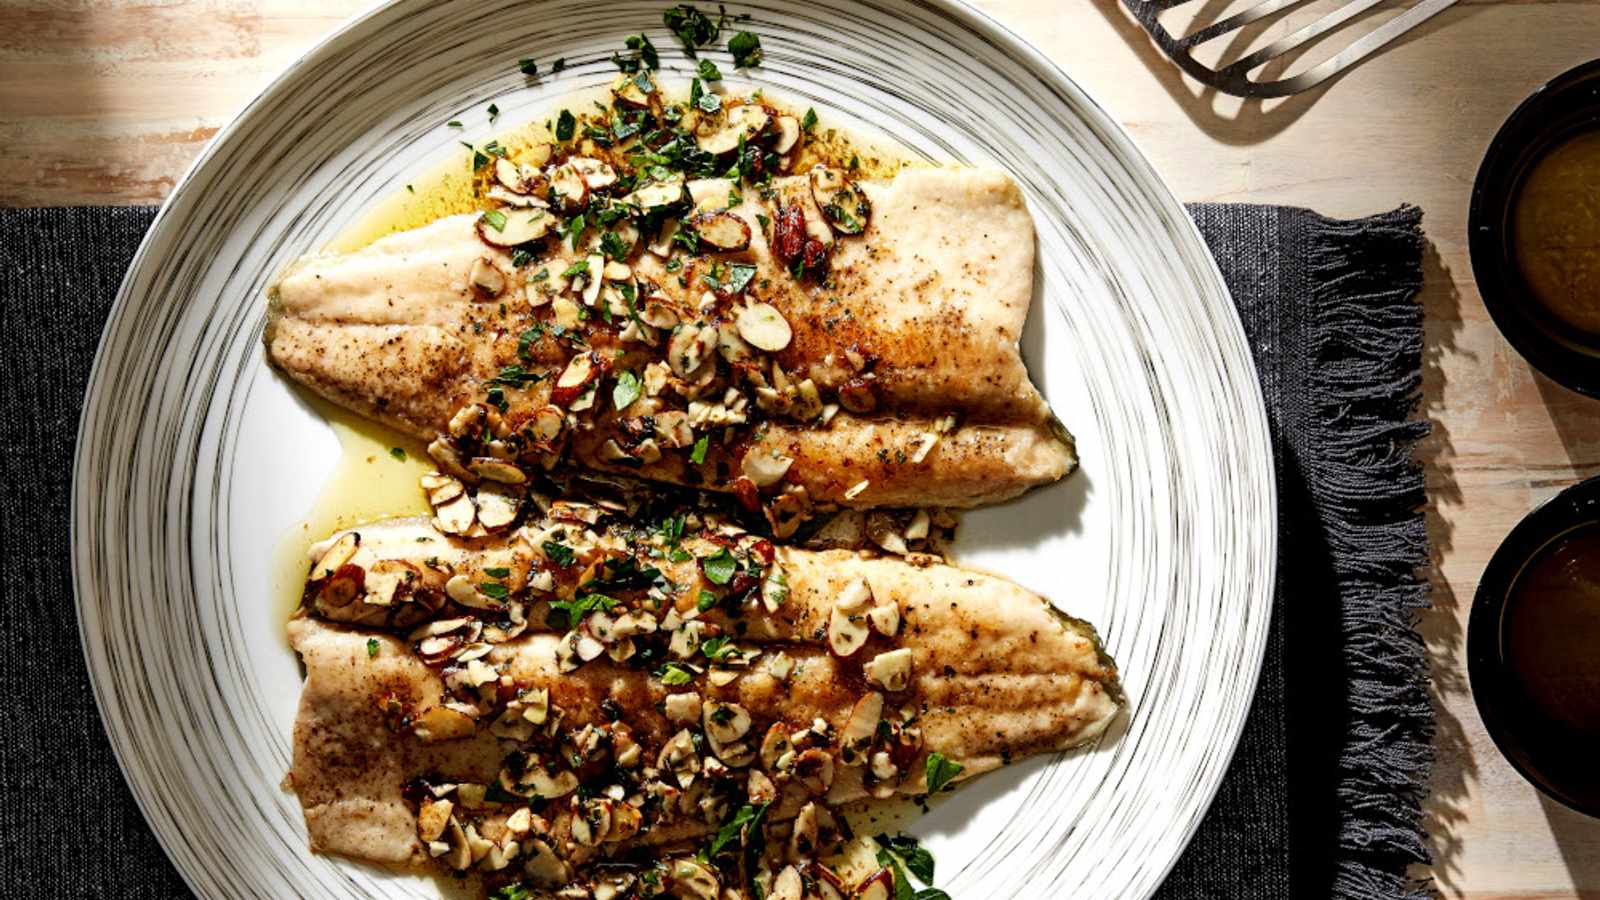 Deceptively easy, elegant trout amandine really does come together in less than 30 minutes